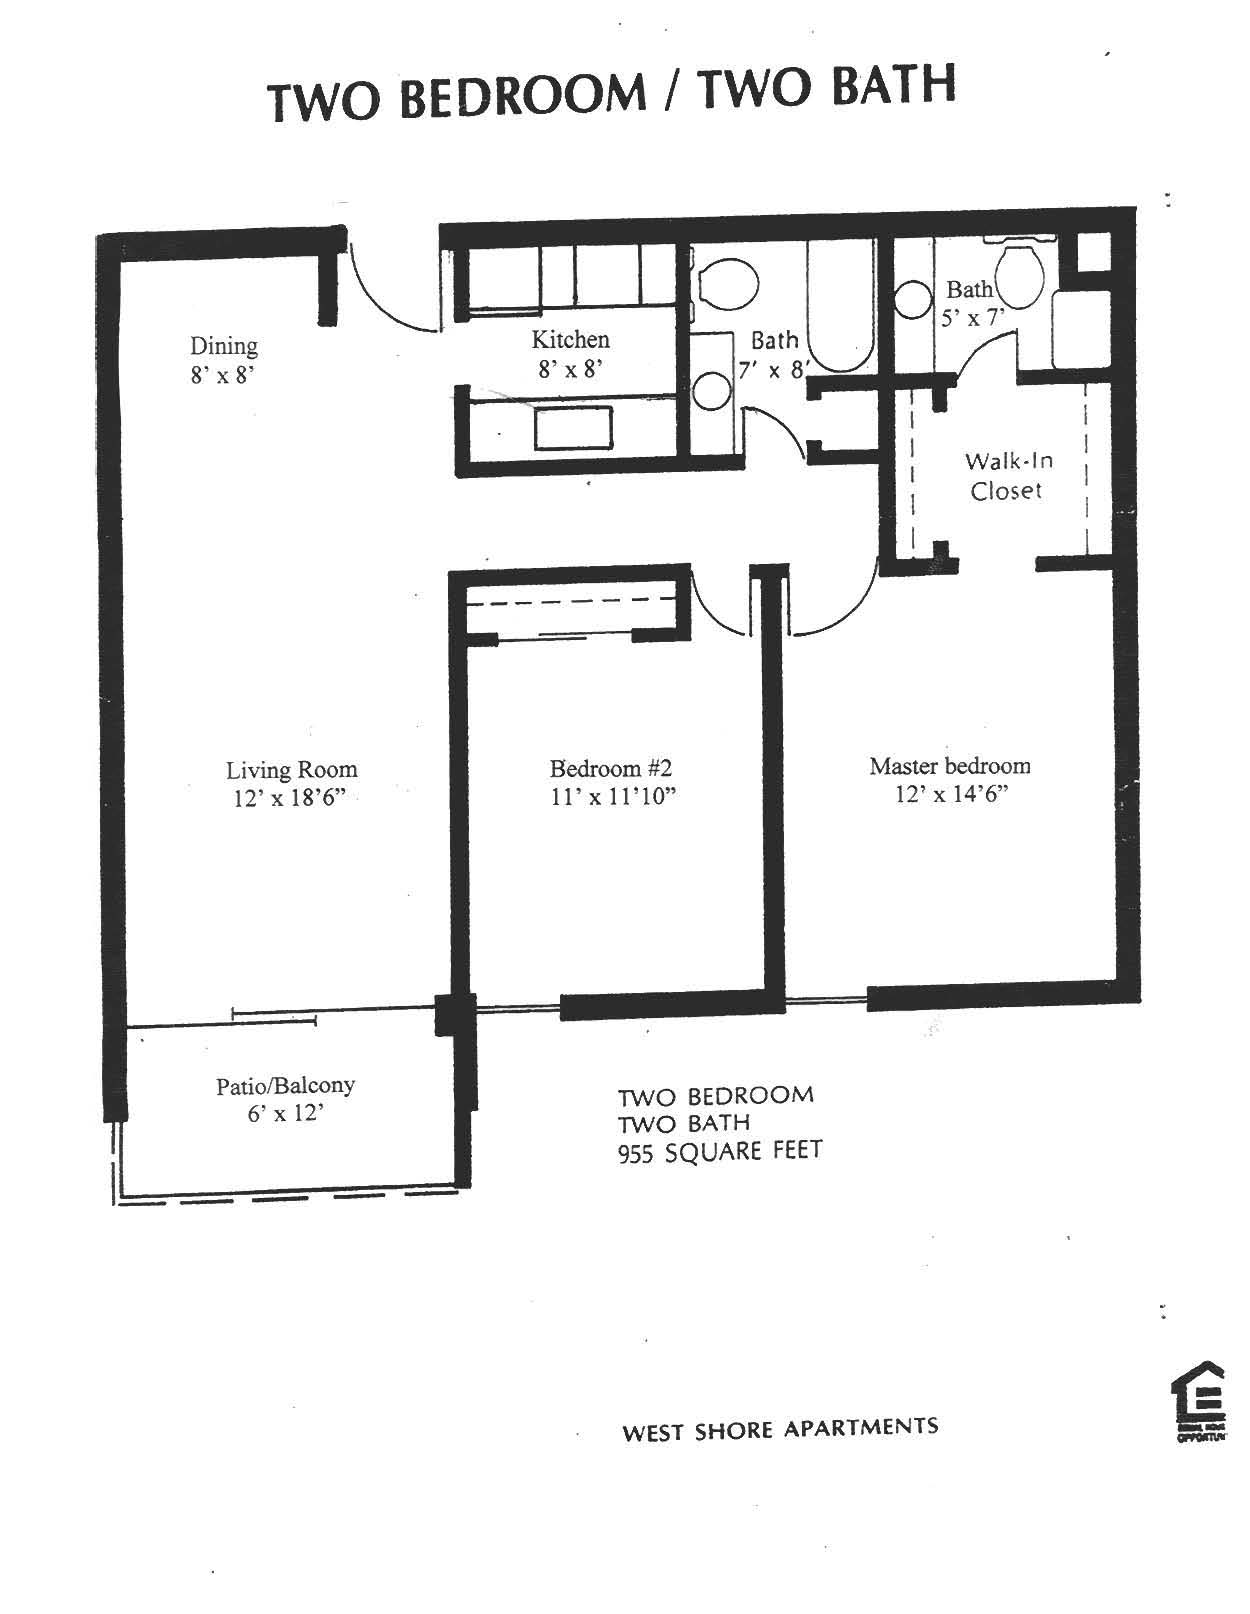 WestShore Apartments/Embassy Apartments - Floorplan - Westshore C2.2 - None Available